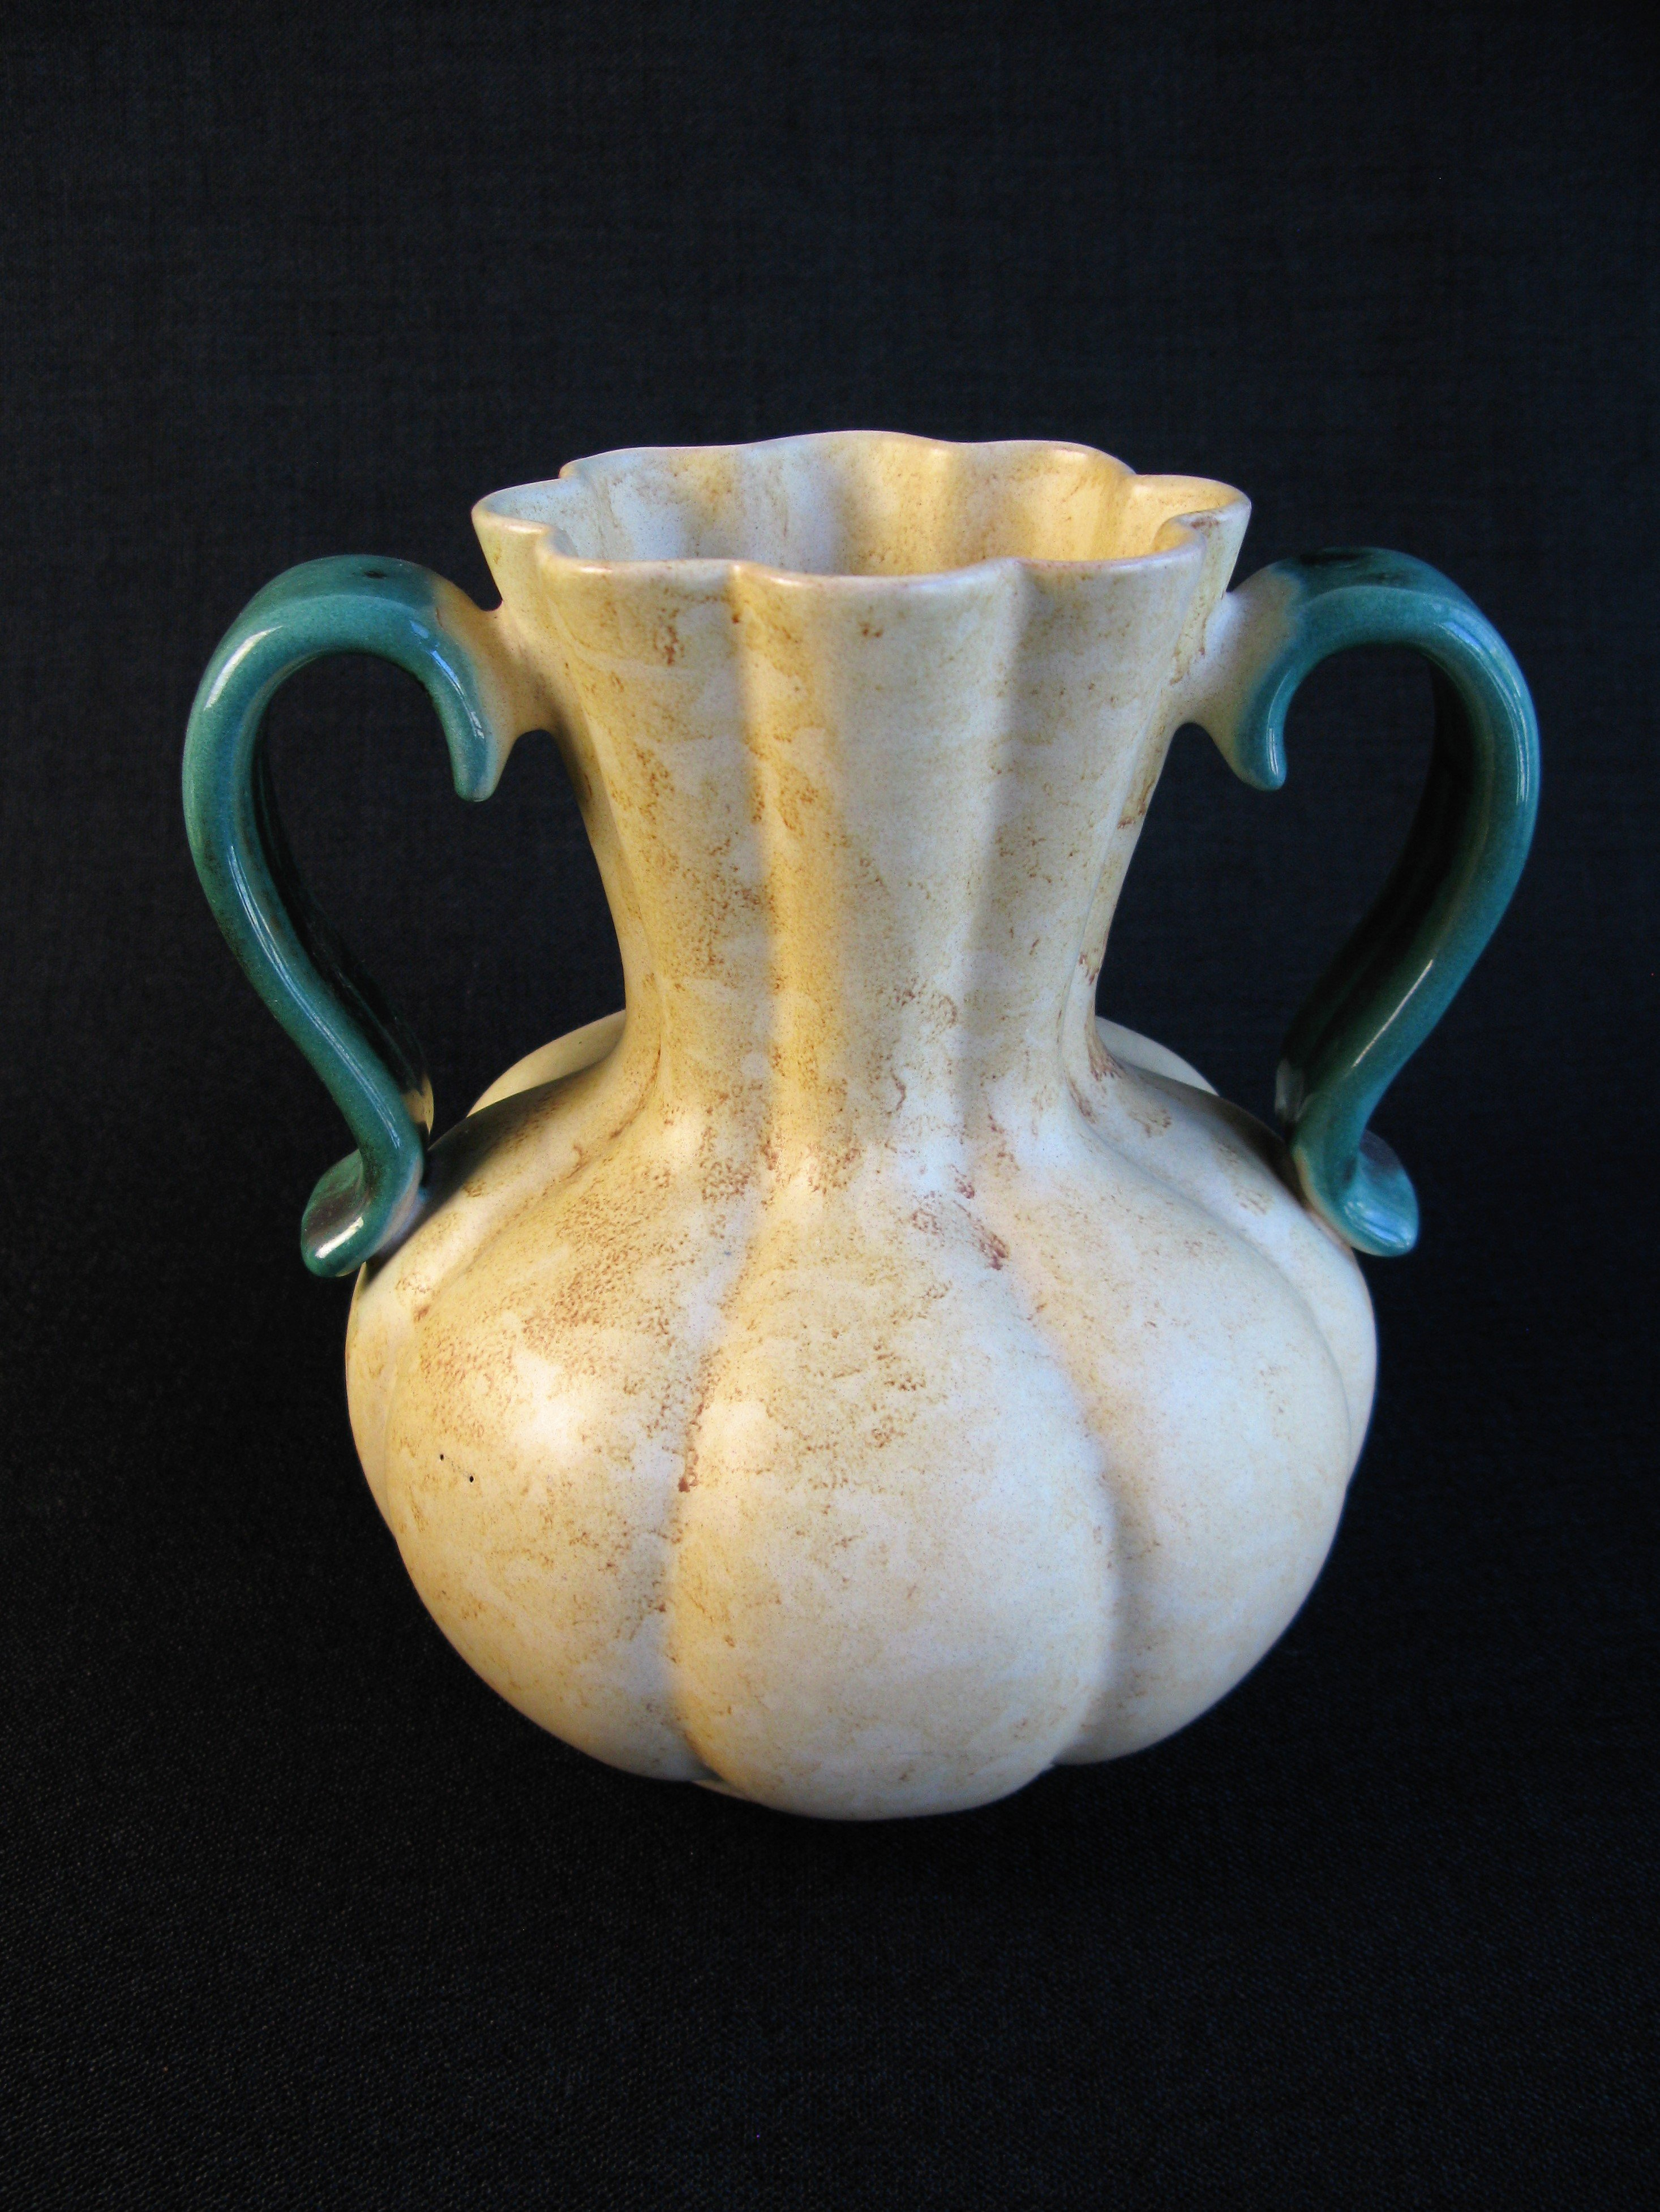 yellowish/green vase 294